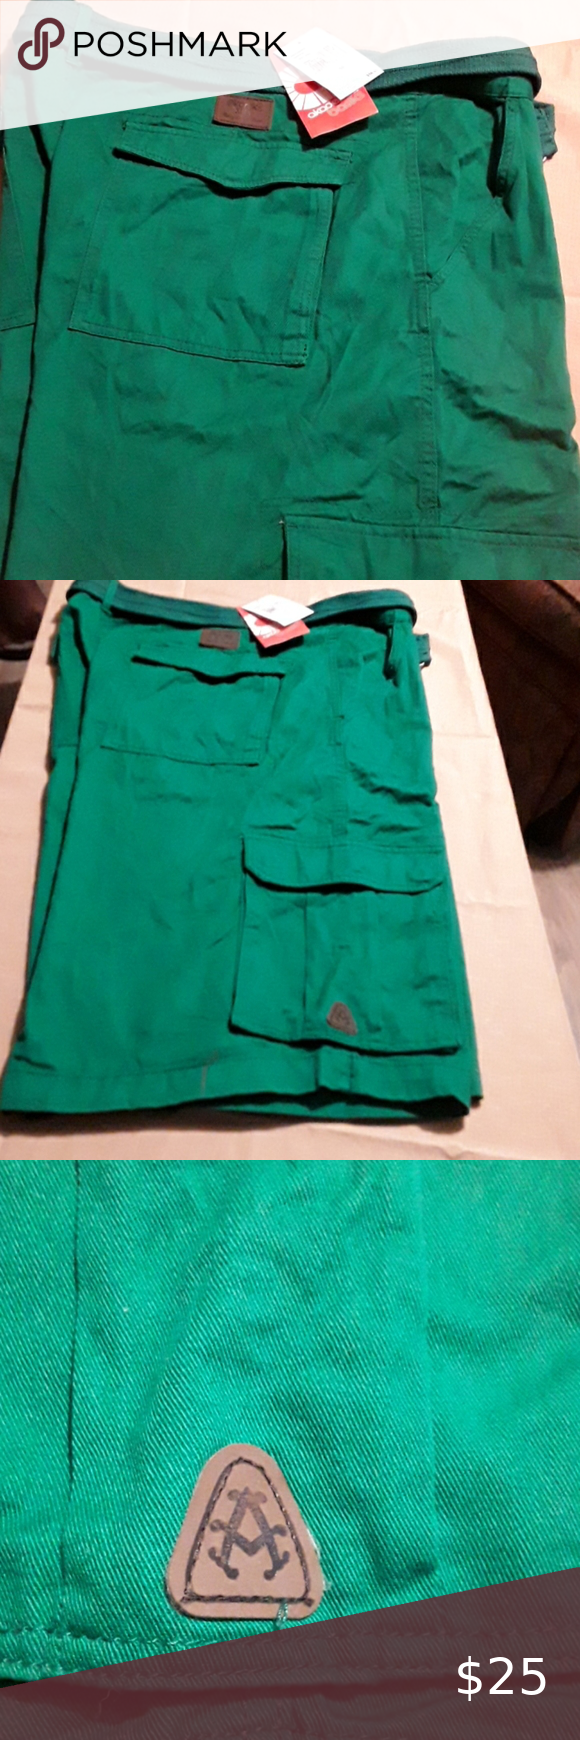 AKADEMIKS GREEN CARGO SHORTS   NWT Cargo shorts have 2 deep pockets in back, 2 deep side pockets and 2 deep front pockets back and side pockets close for added security. Matching belt included. NEVER WORN, STILL HAVE TAGS. Akademiks Shorts Cargo